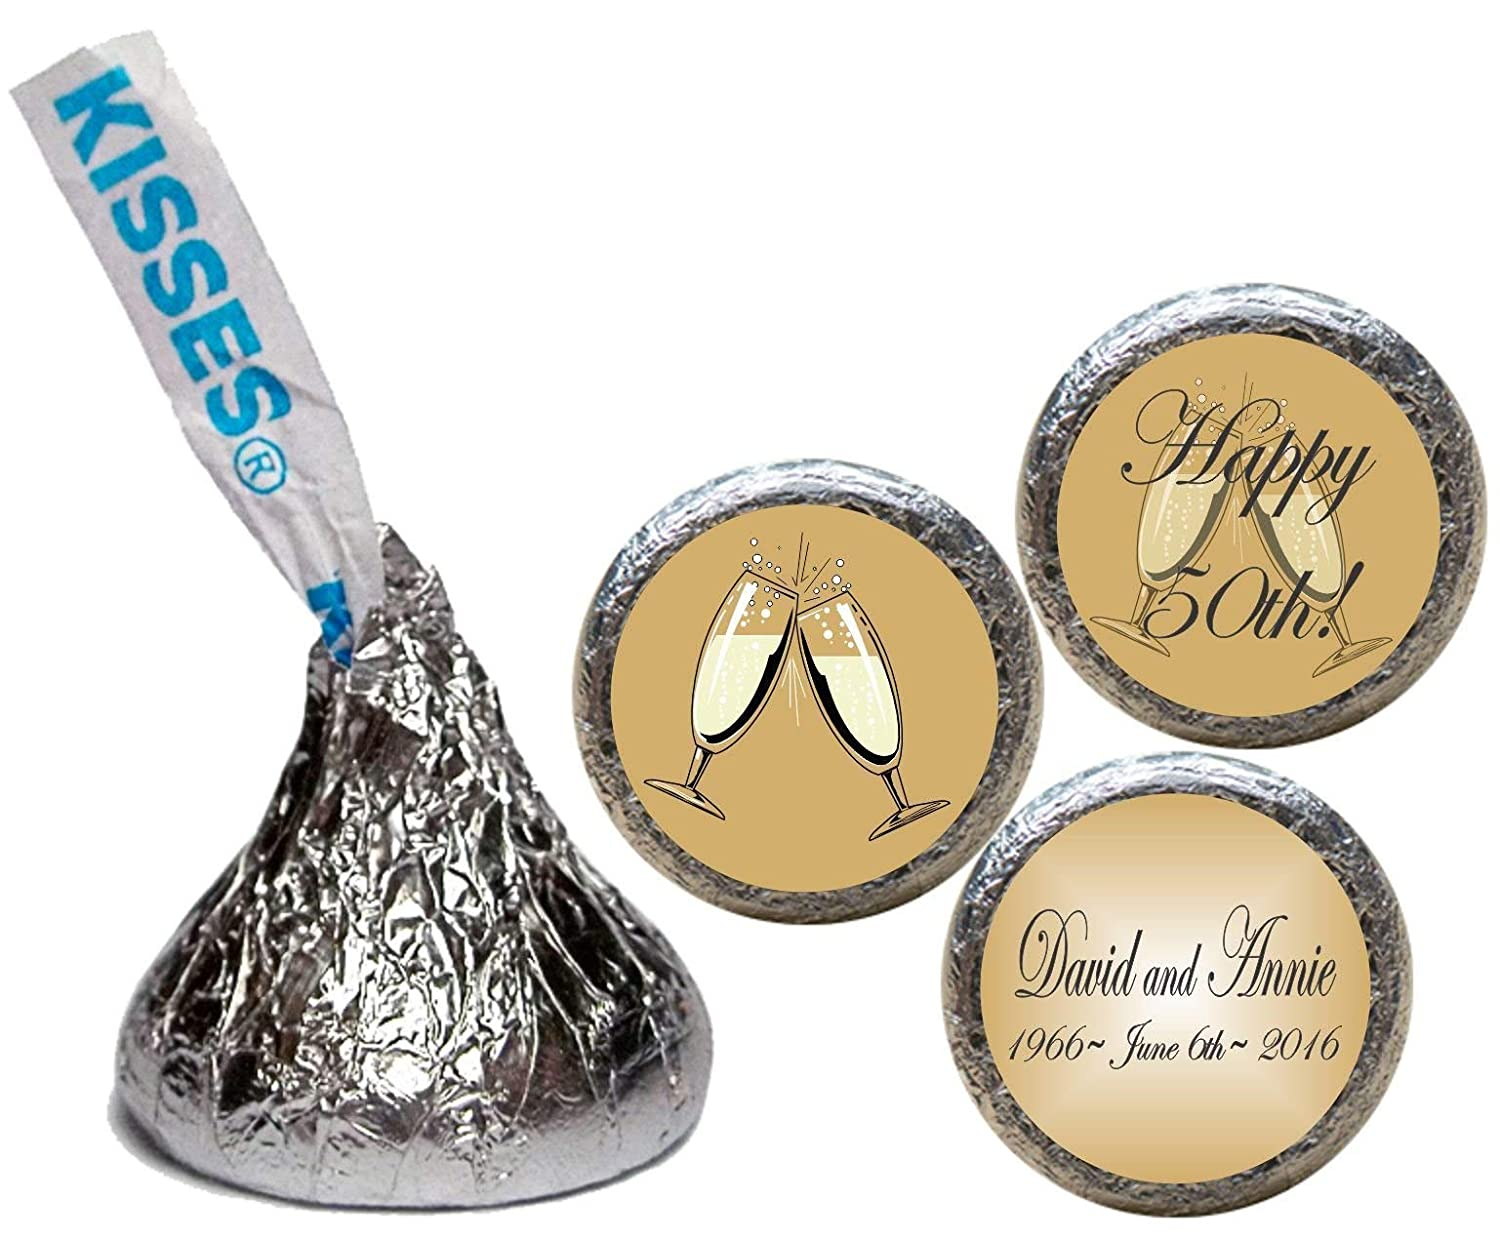 Set of 108 50th Anniversary Stickers for the Bottom of Chocolate Kisses RChampGlassG